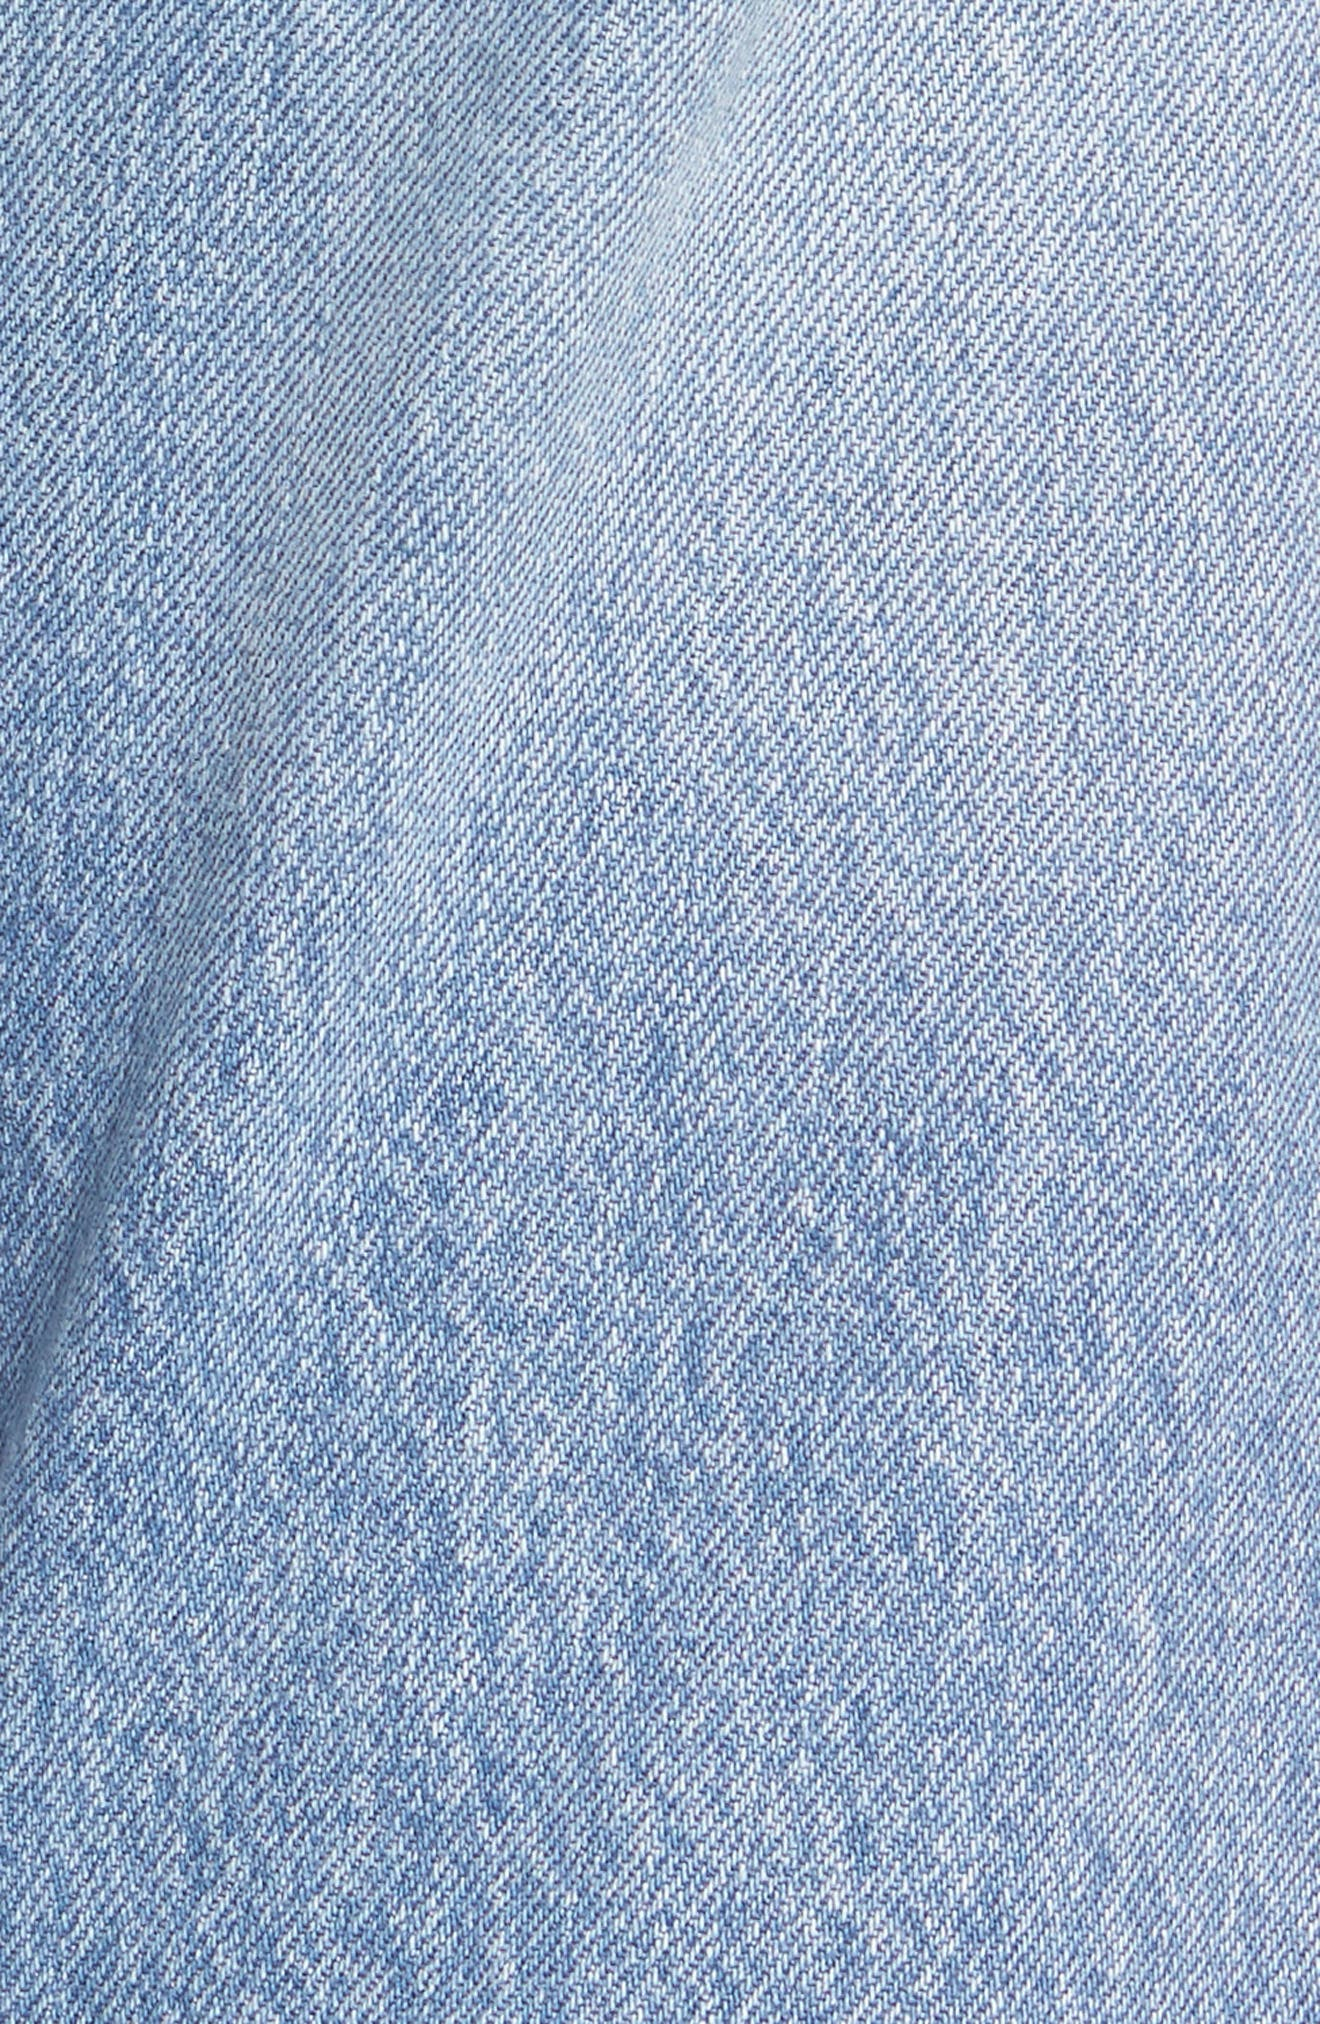 Alternate Image 5  - Levi's® 501 Crop Jeans (You Pretty Thing)